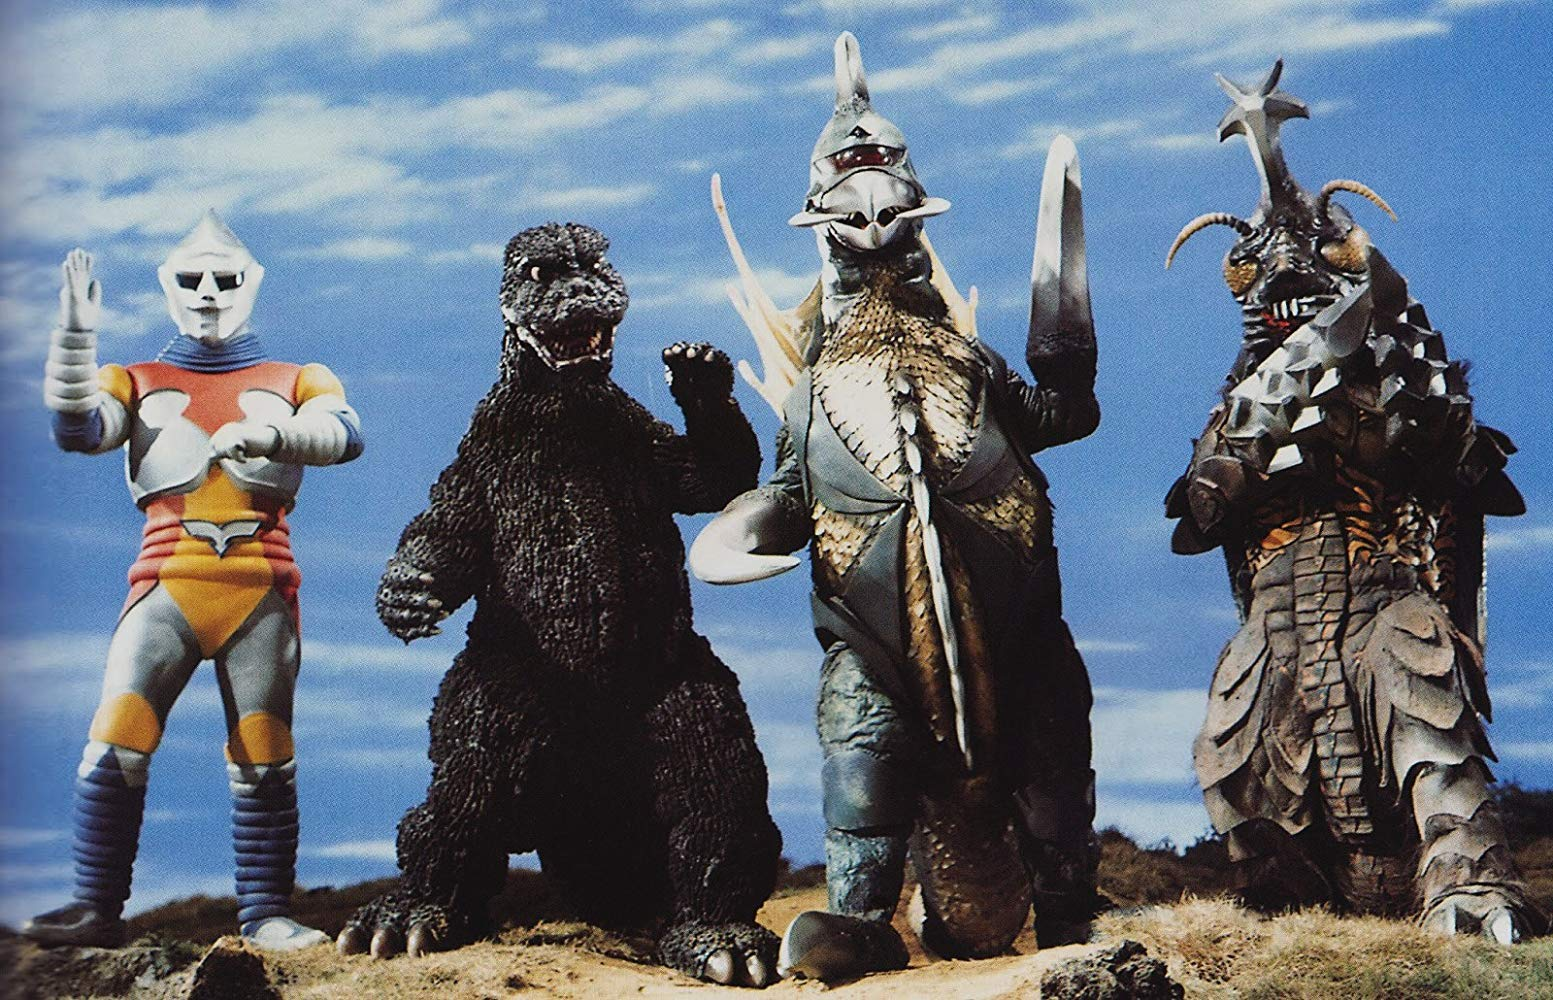 Monster line-up - Jet Jaguar, Godzilla, Gigan and Megalon in Godzilla vs Megalon (1973)